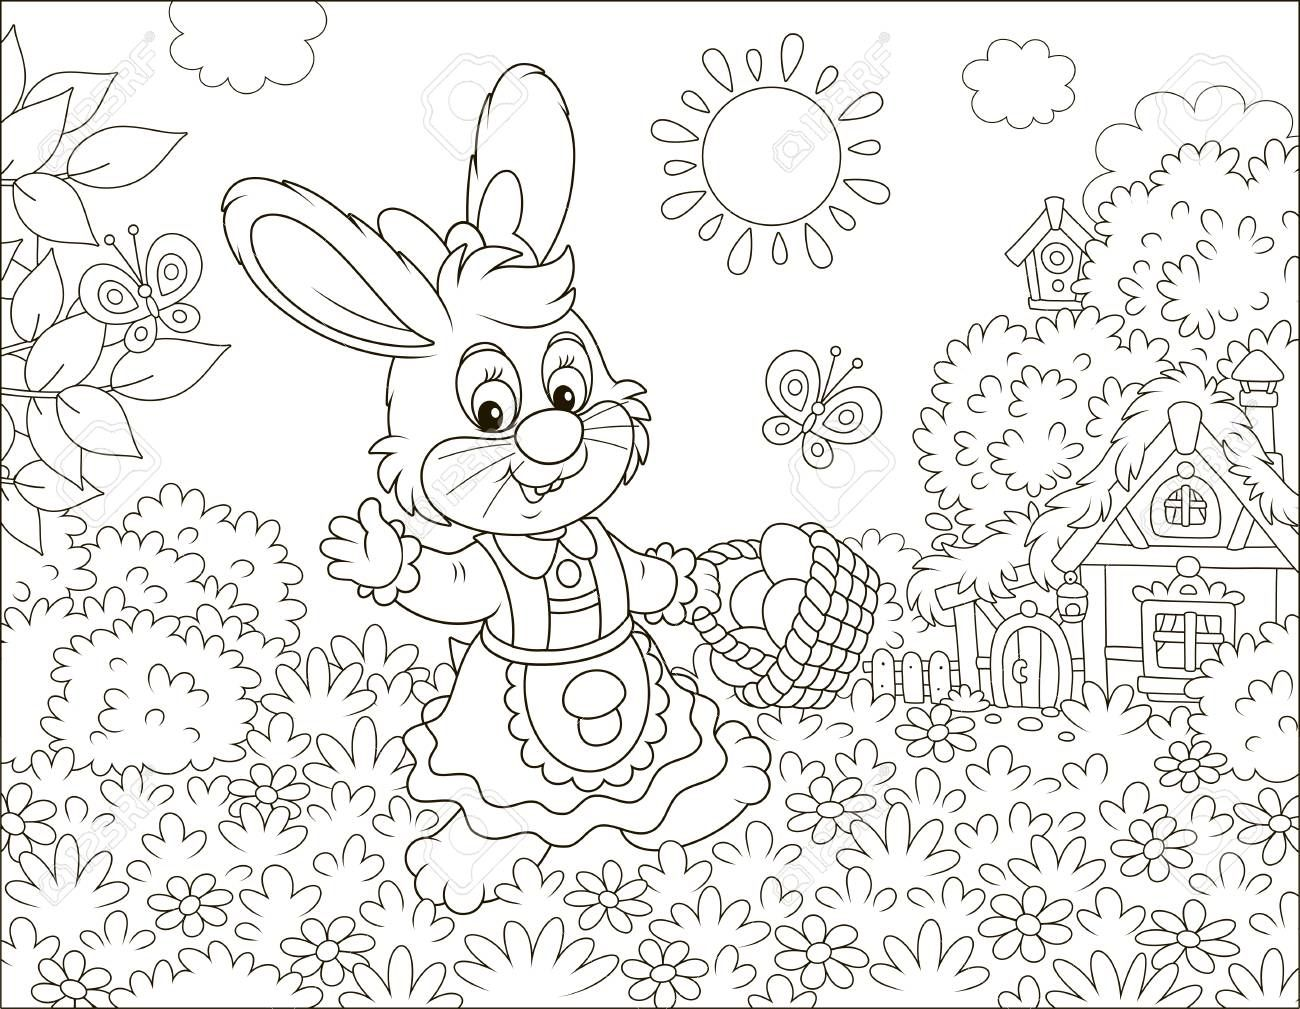 Friendly Smiling Easter Bunny With A Basket Of Colored Eggs Walking In Front Of A Small Hut Among Flowers On Su Cartoon Styles Coloring Books Coloring Pictures